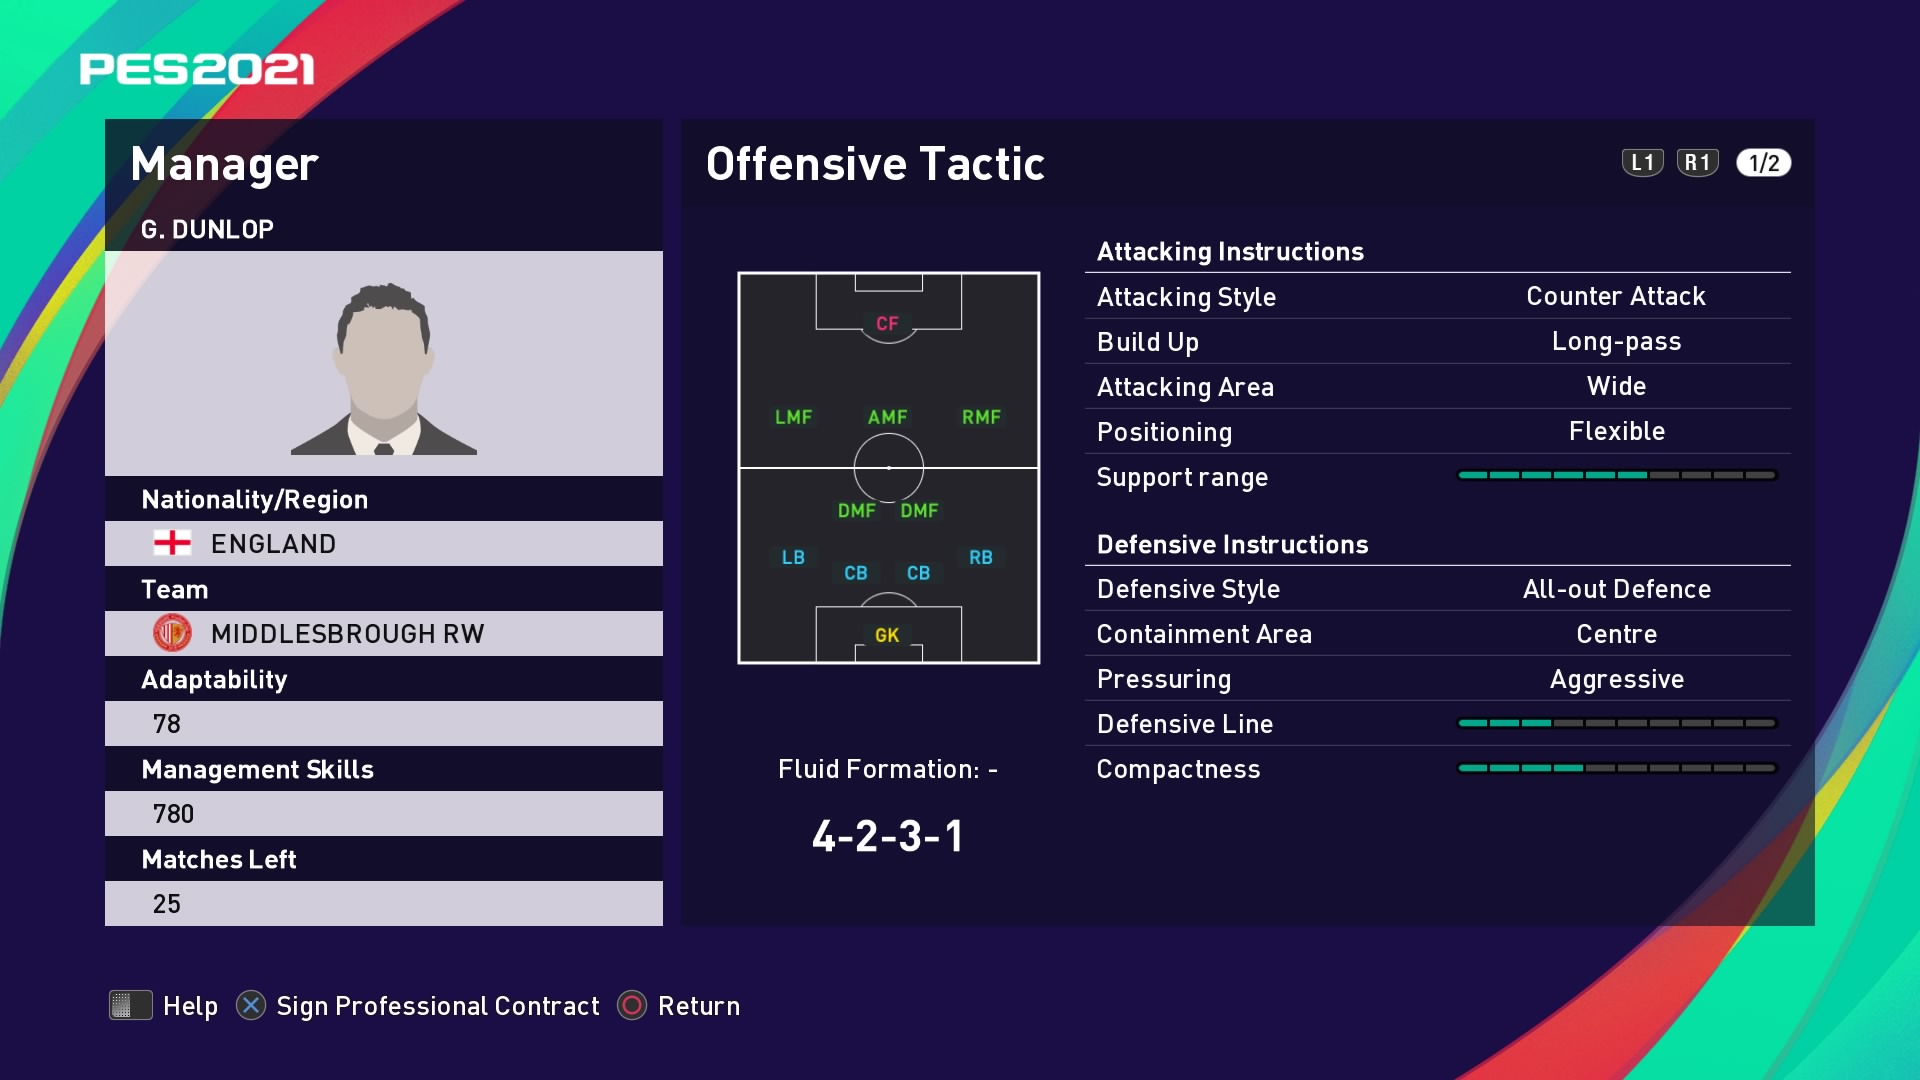 G. Dunlop (Neil Warnock) Offensive Tactic in PES 2021 myClub